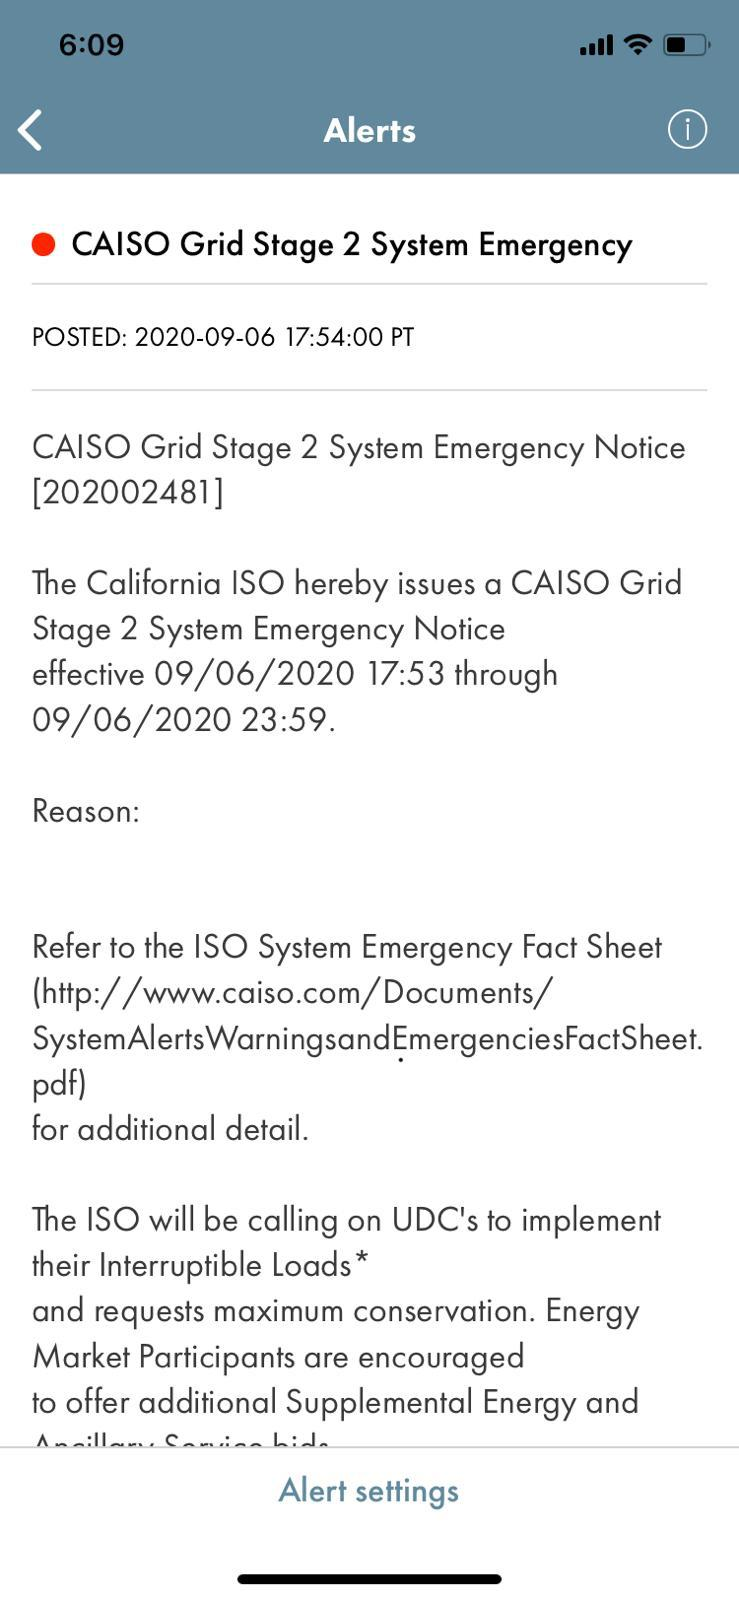 Silicon Valley Power On Twitter The California Independent System Operator Has Issued A Stage 2 Emergency Through Midnight And Is Requesting Voluntary Conservation Please Delay Use Of Large Appliances And Set Thermostats